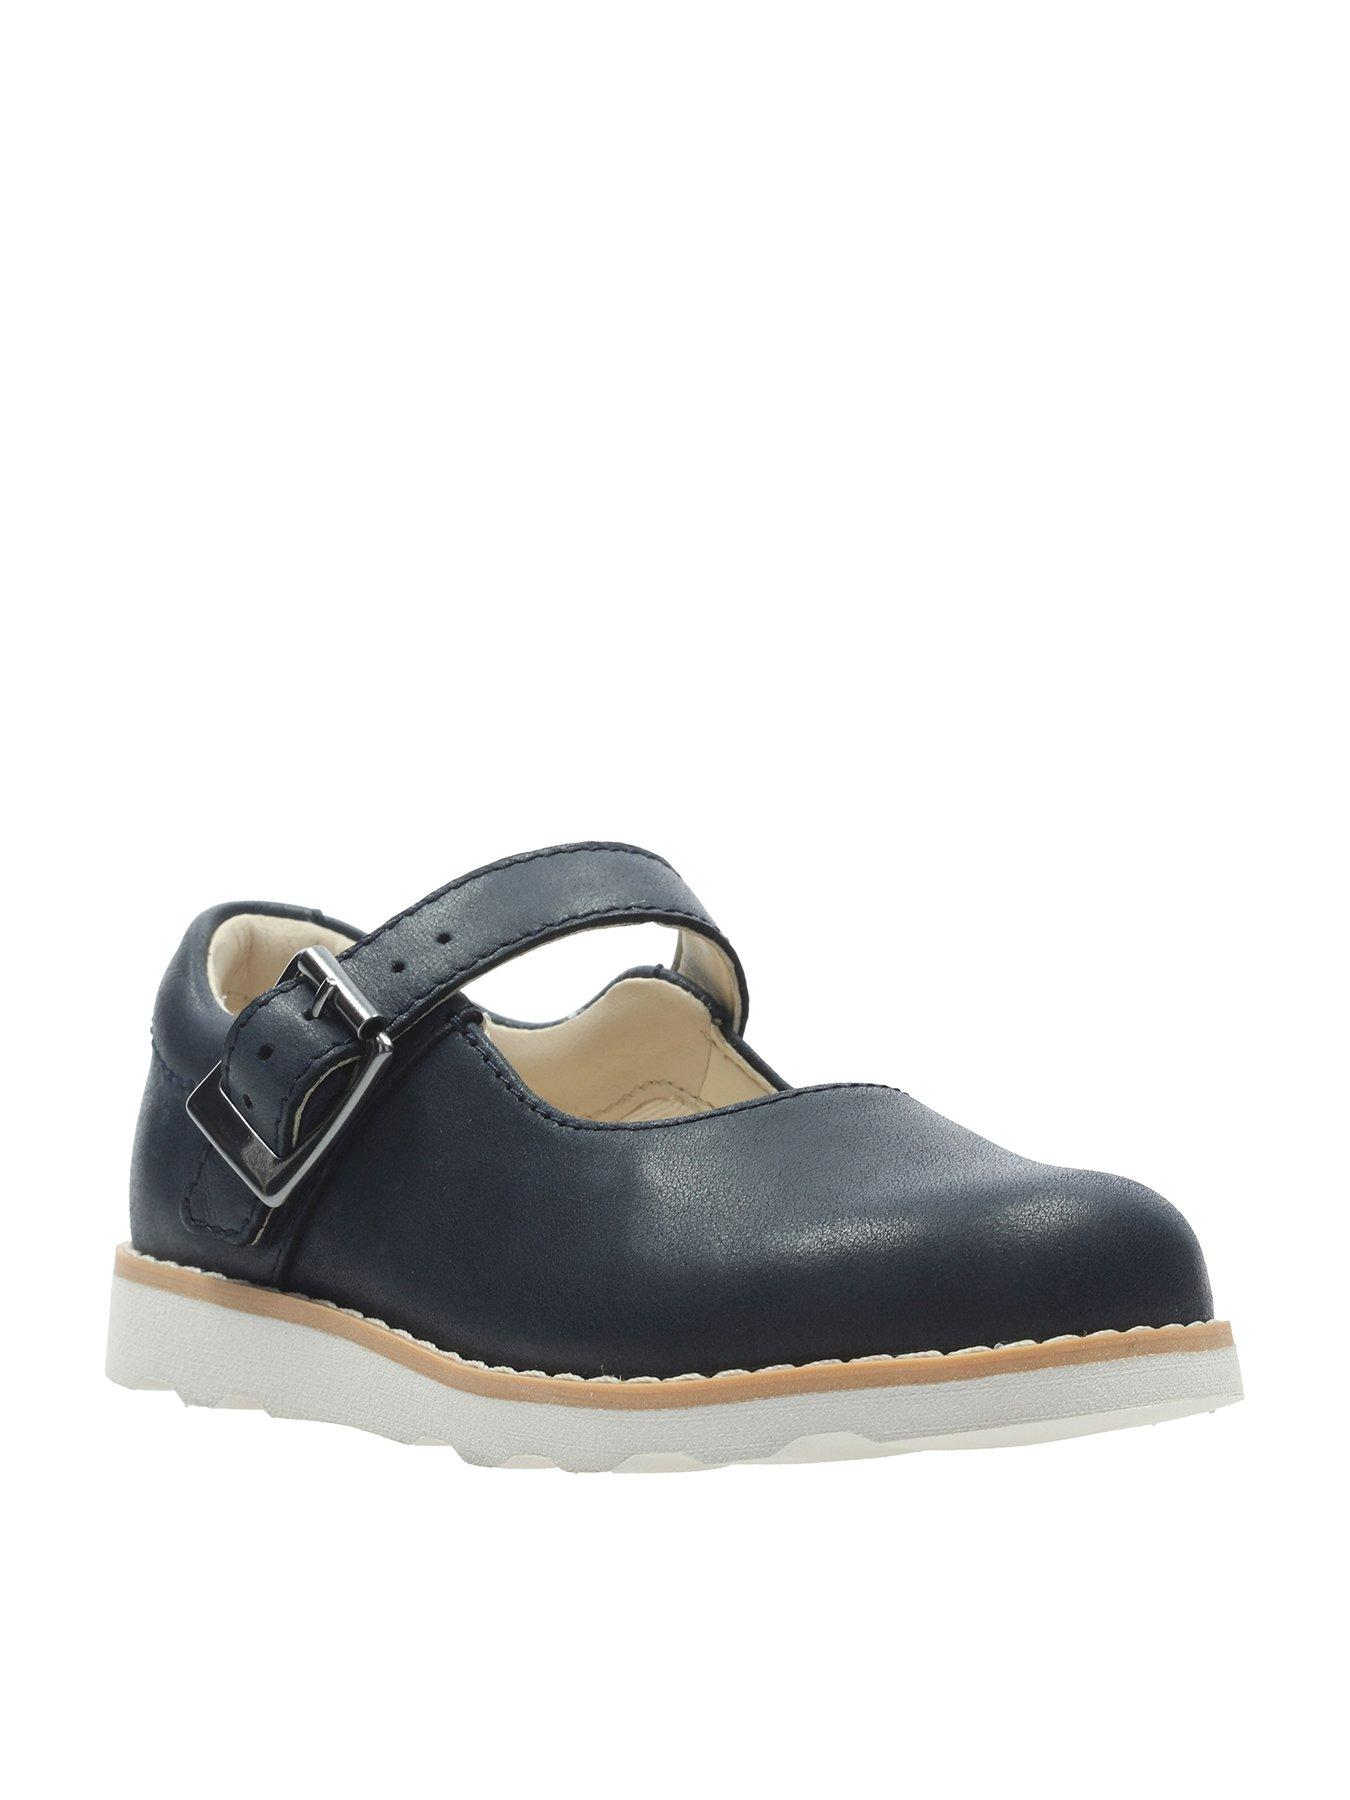 c521e312118 Clarks Crown Honor Girls First Shoes - Navy | £26.00 | Gay Times